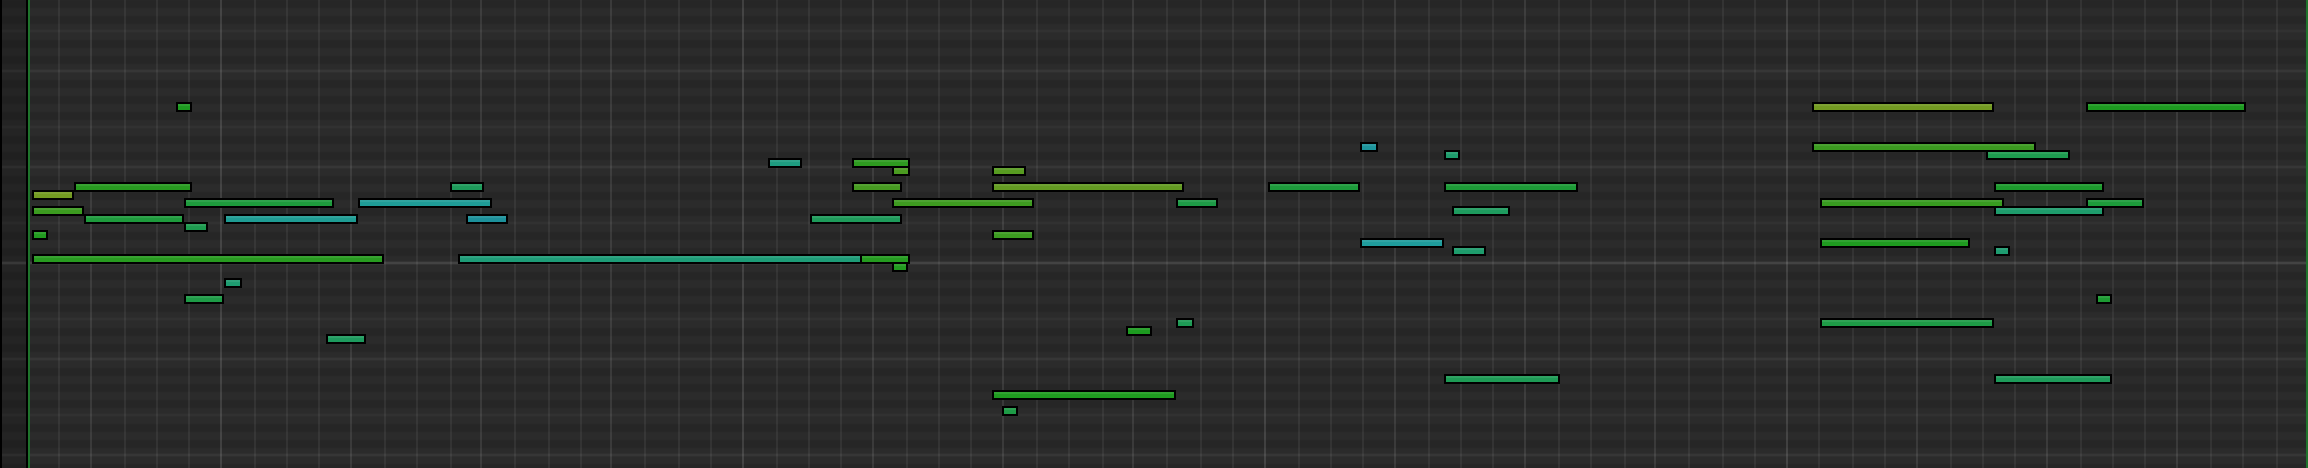 Music Analysis for Automatic Music Composition: Source